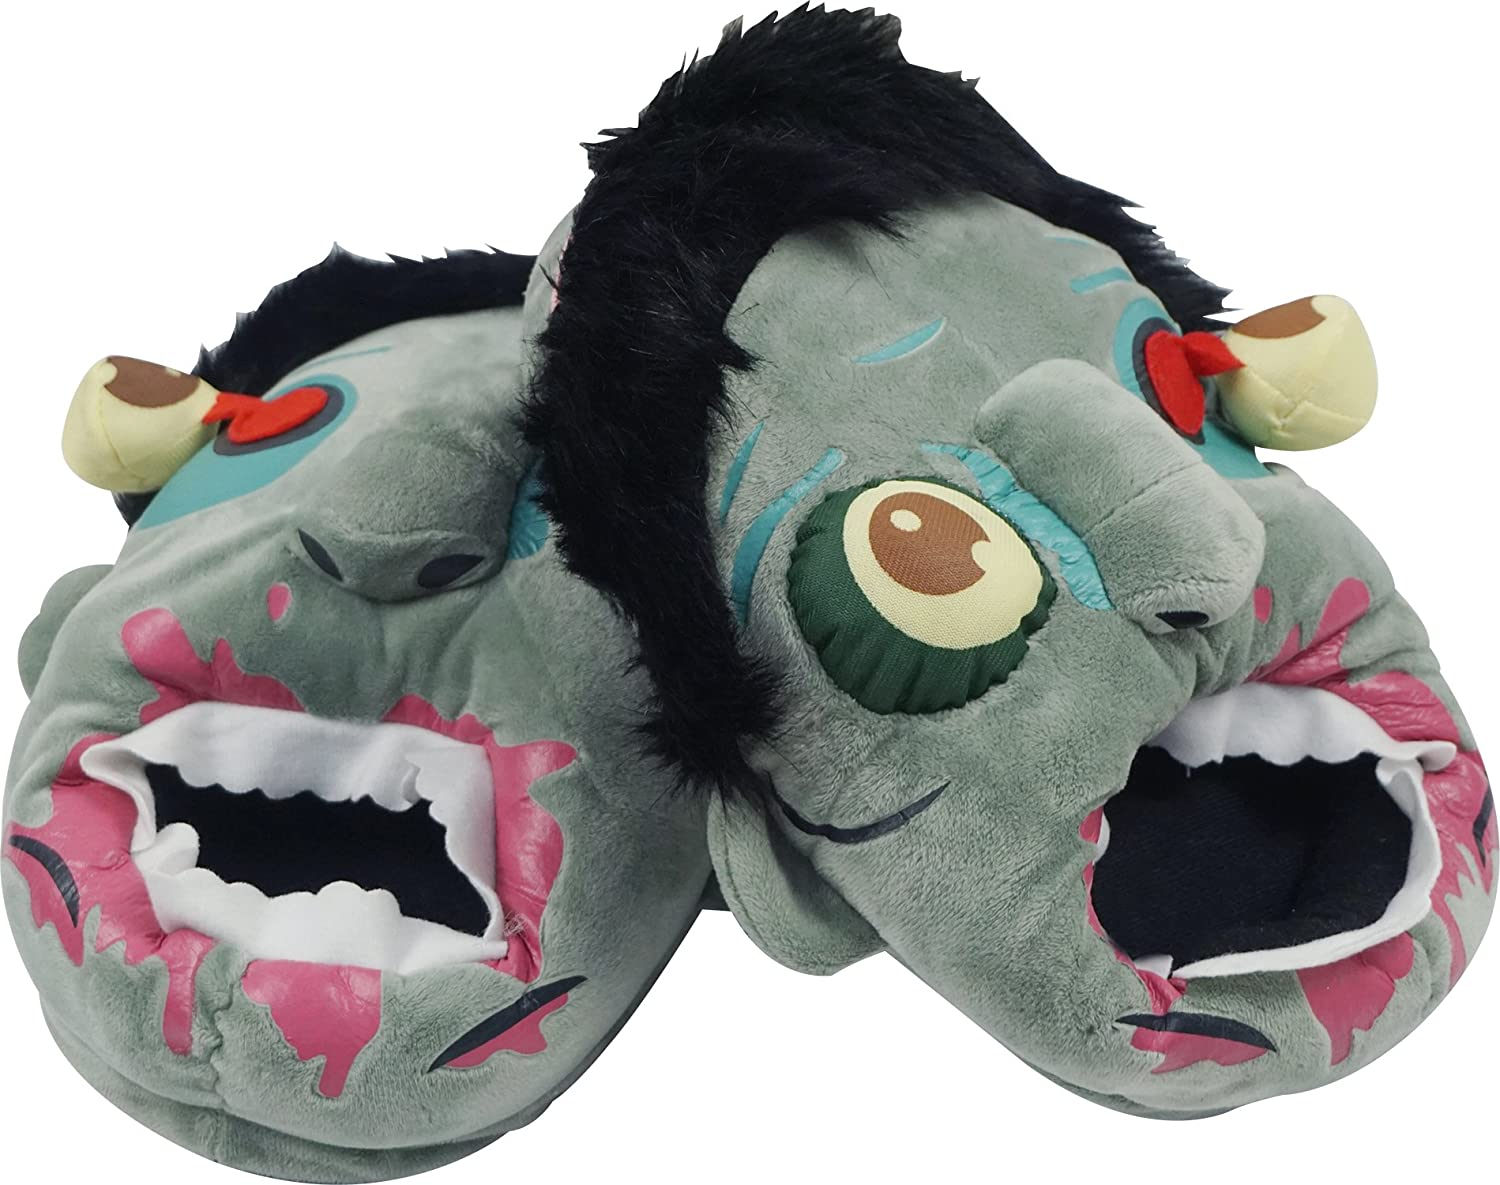 Zombie Plush Slippers (One size fits most) ELA14090107020